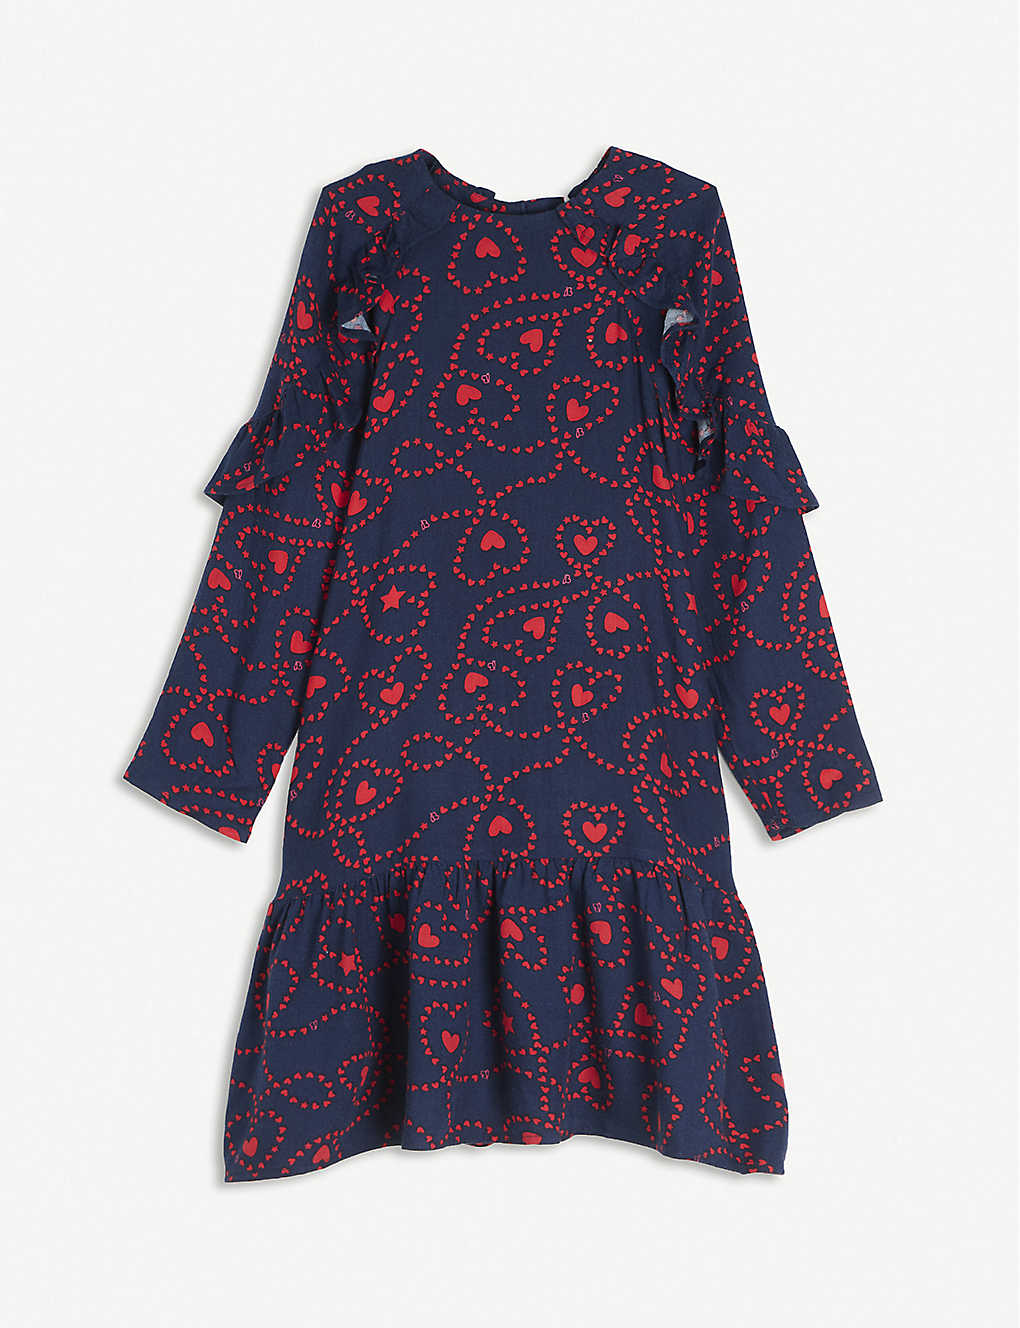 BILLIE BLUSH: Heart-print ruffled woven dress 4-12 years